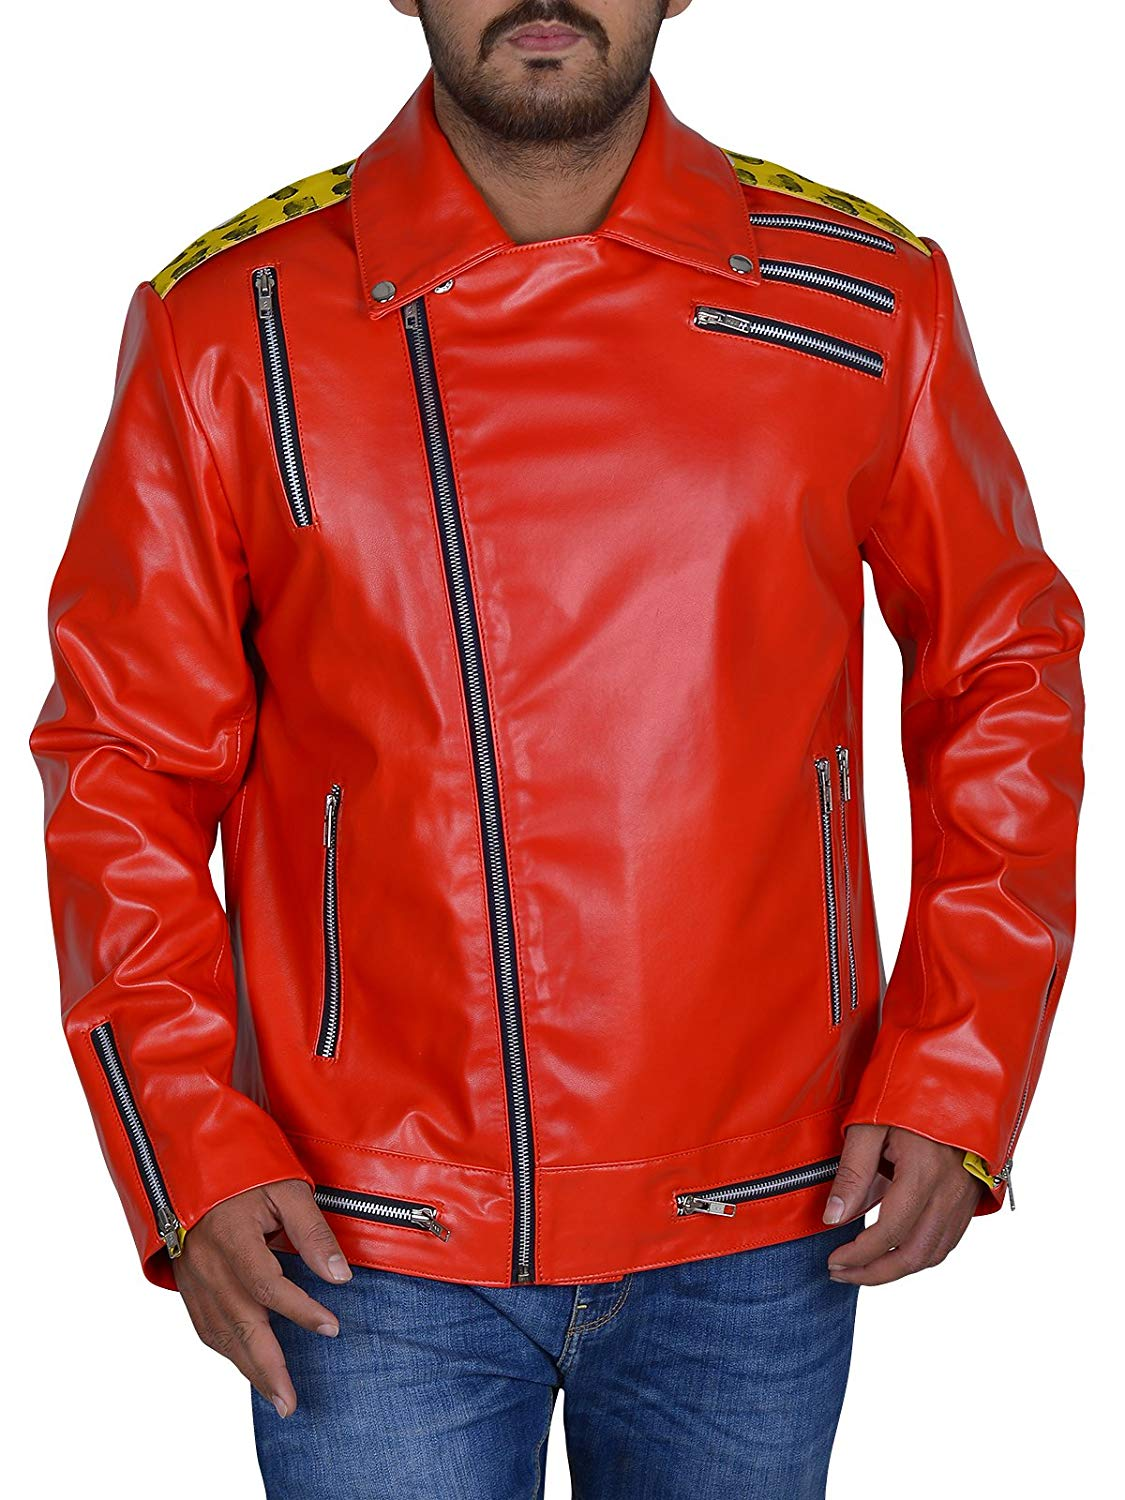 Men's Fashion Eric Arndt Soft Faux Leather Red and Yellow Biker Multi Zipper Jacket at Amazon Men's Clothing store: